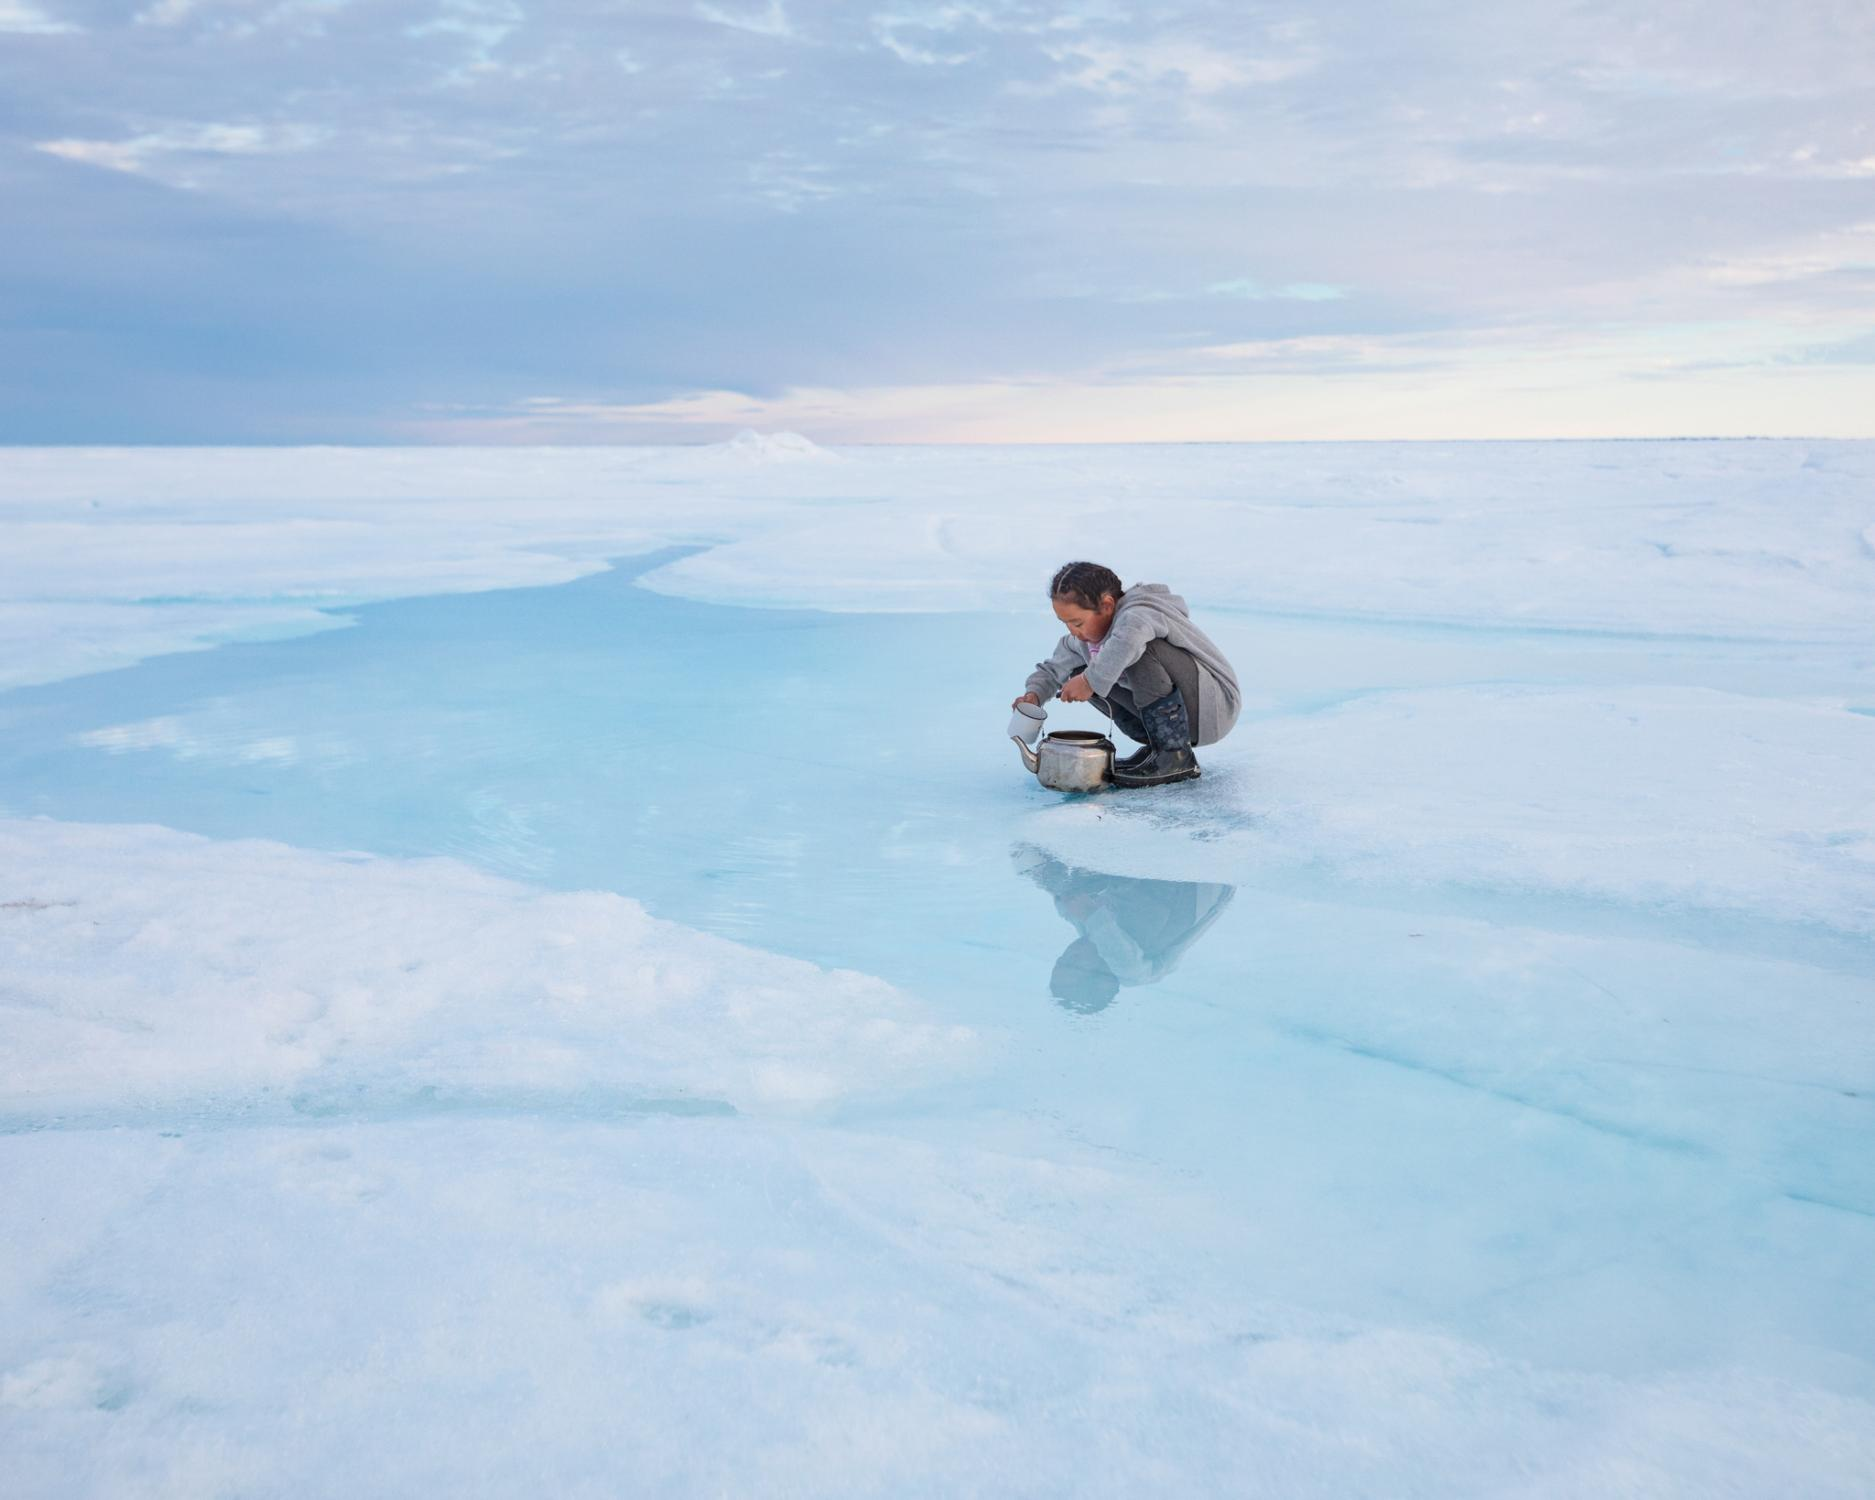 When sea ice ages, the salt sinks into the ocean, leaving fresh, drinkable water on top. Charlotte Naqitaqvik collects a teapot of water at her family's hunting camp in Nuvukutaak, near the community of Arctic Bay in northern Canada.